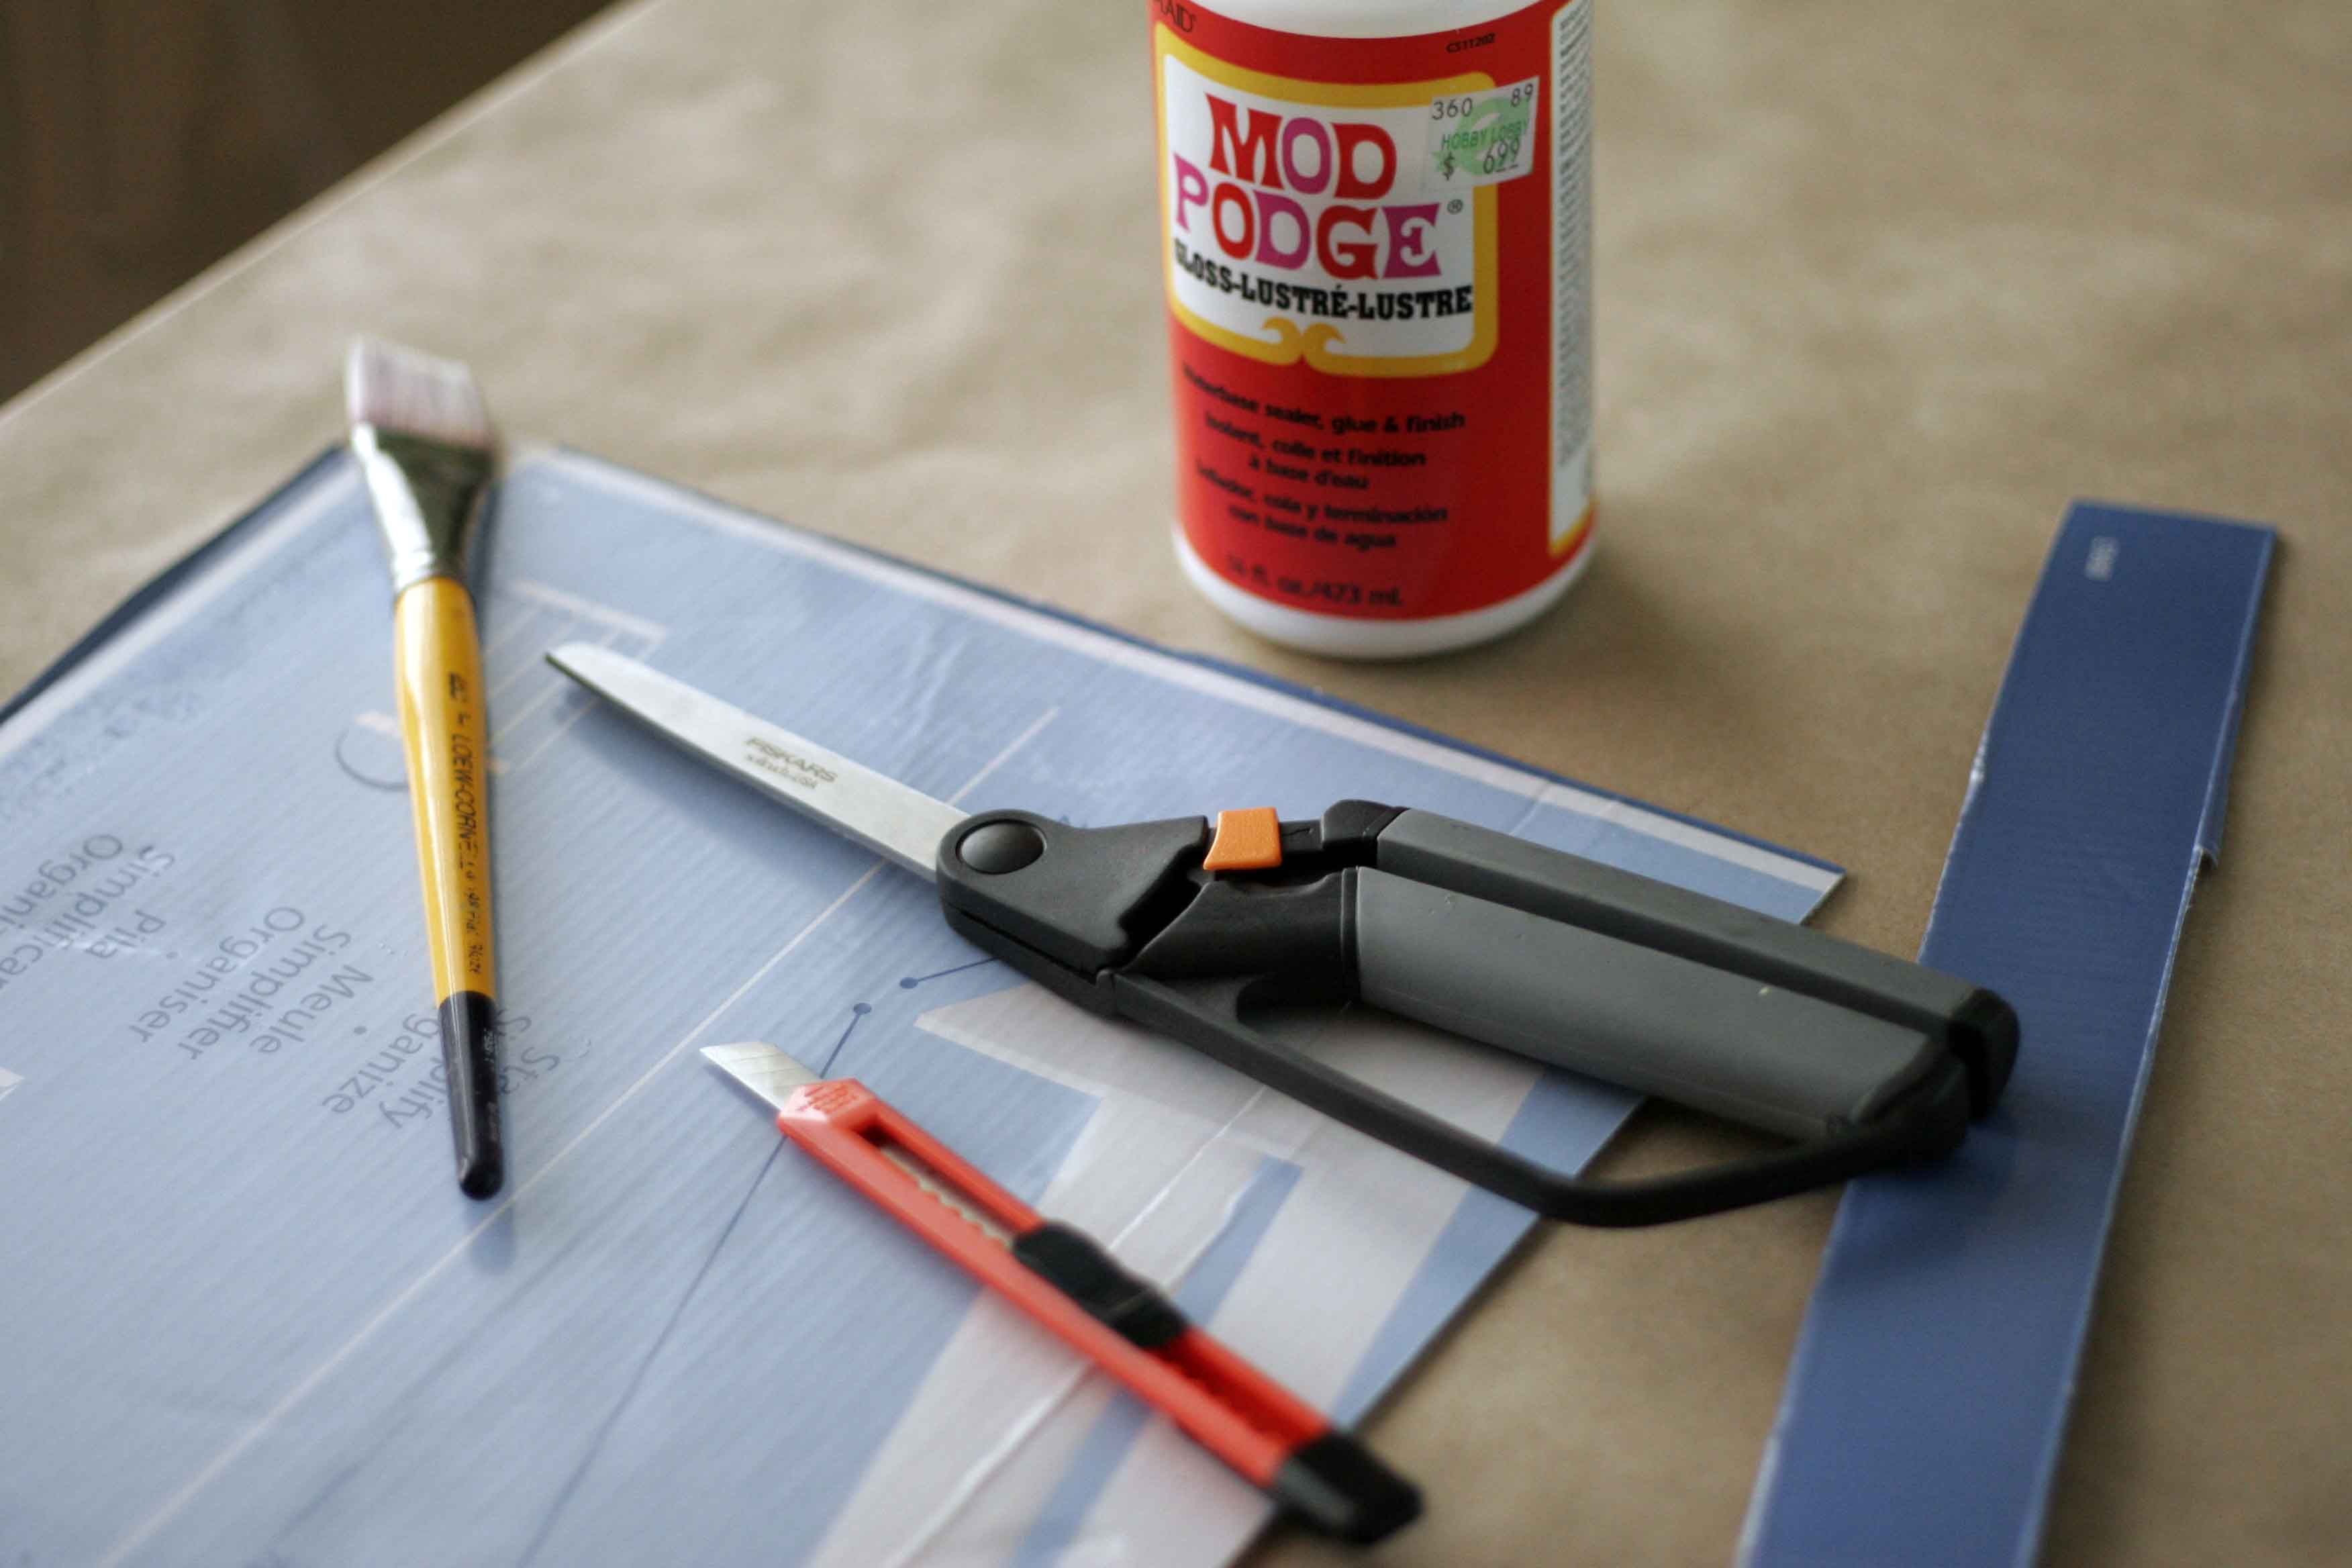 How To Make A Serving Tray Out Of Cardboard